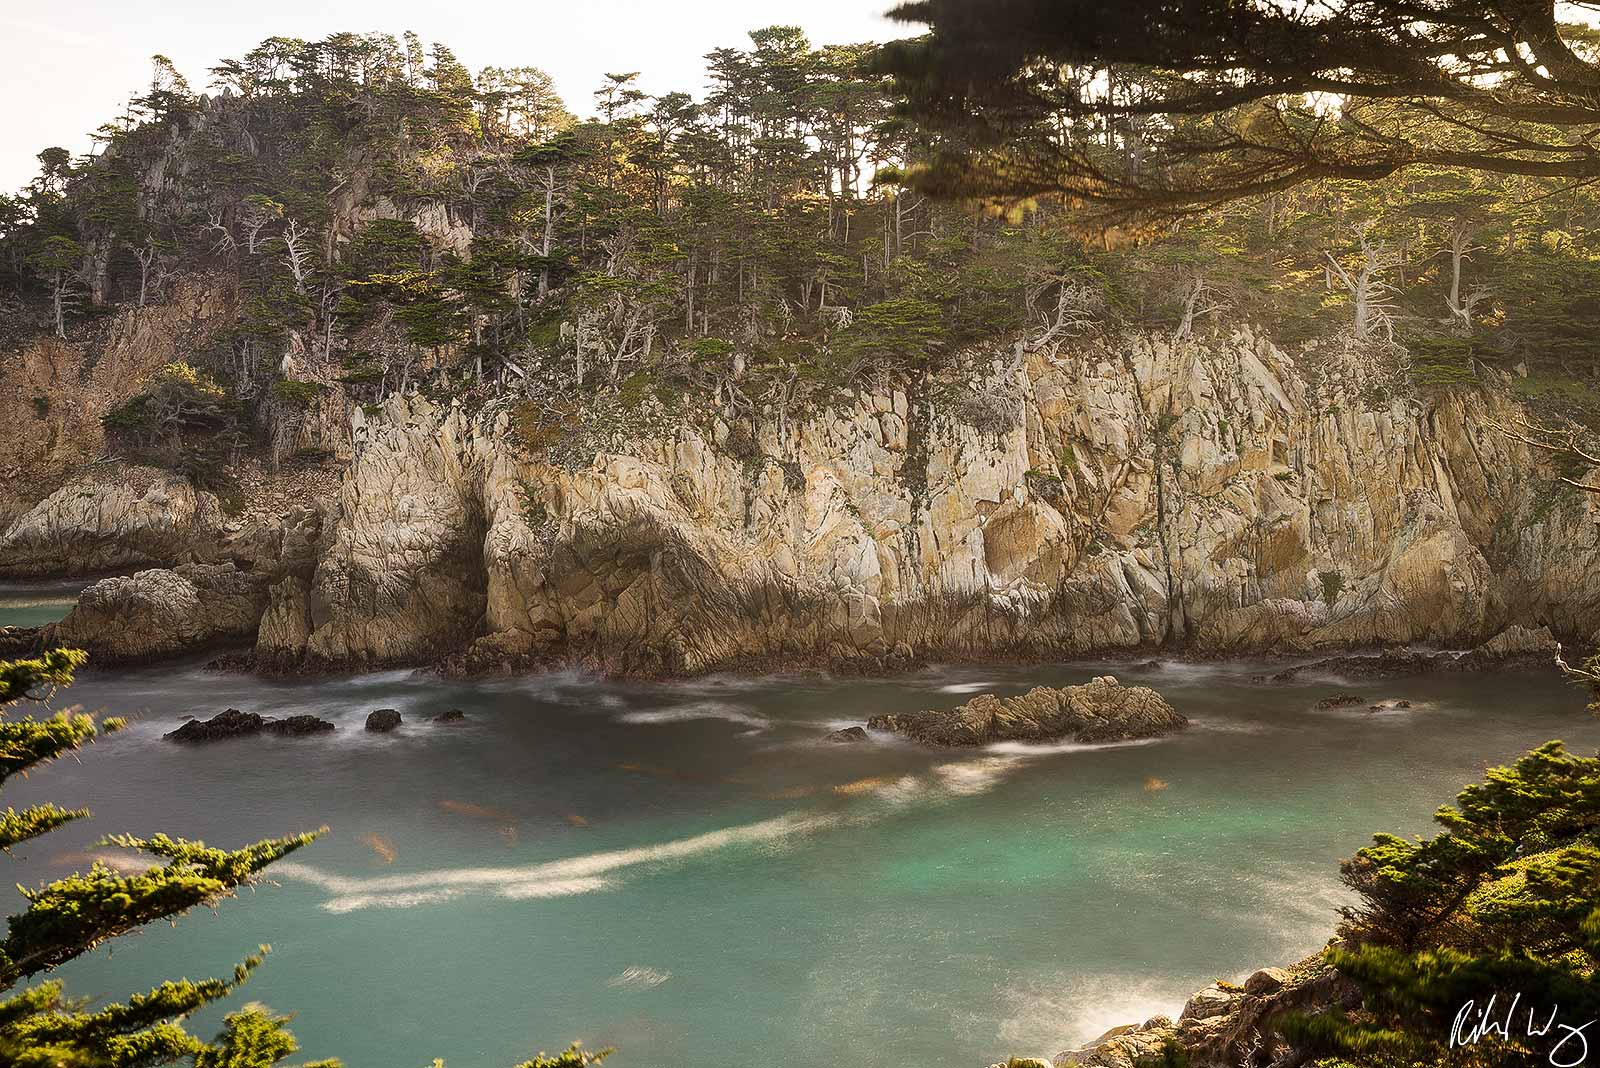 Allan Memorial Grove Scenic Overlook, Point Lobos State Natural Reserve, California, Photo